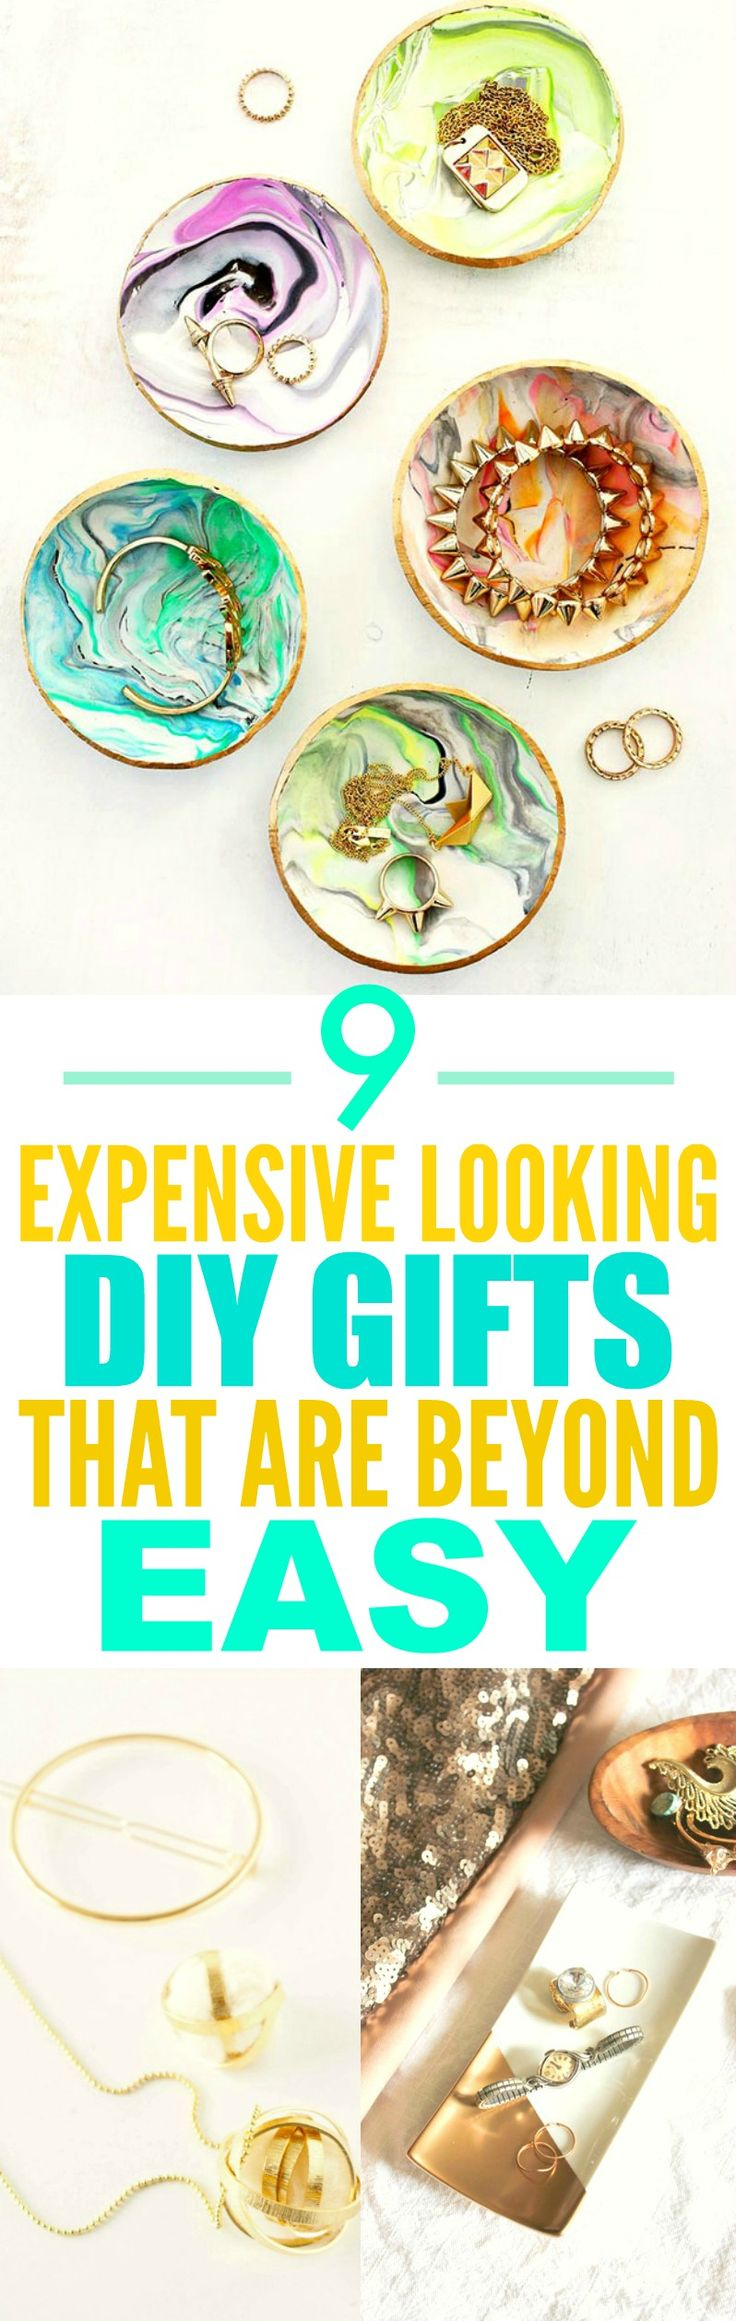 These 9 Expensive Looking DIY gifts are THE BEST! I'm so glad I found these AMAZING ideas! Now I found some great gifts to make for friends. Definitely pinning for later!